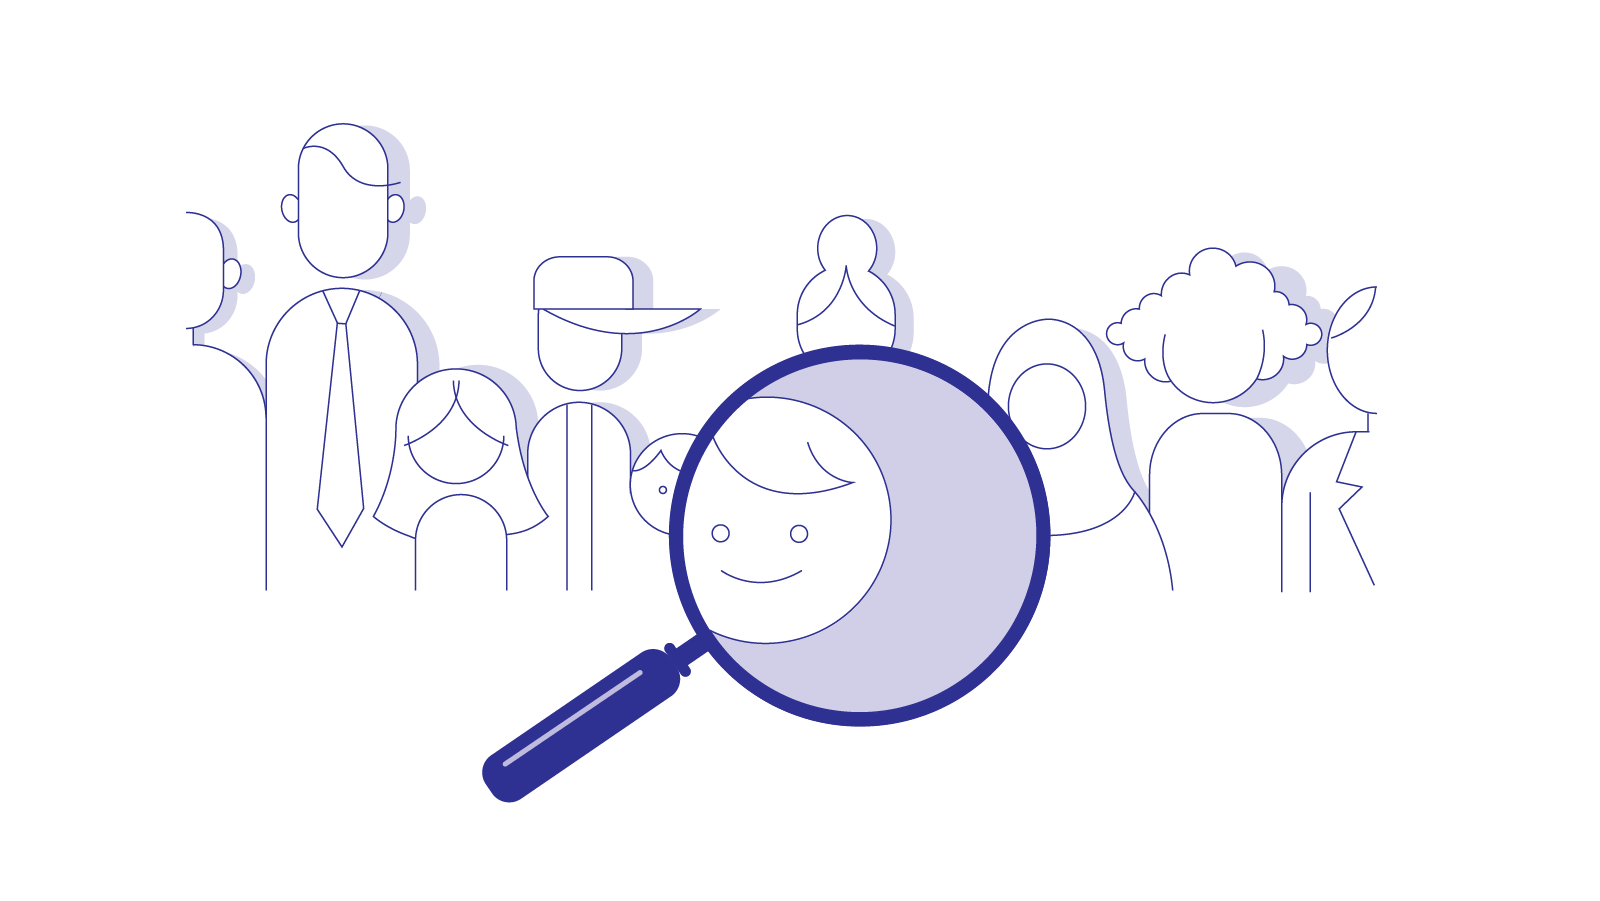 A magnifying glass reveals the face of a single individual among a crowd of many faces.